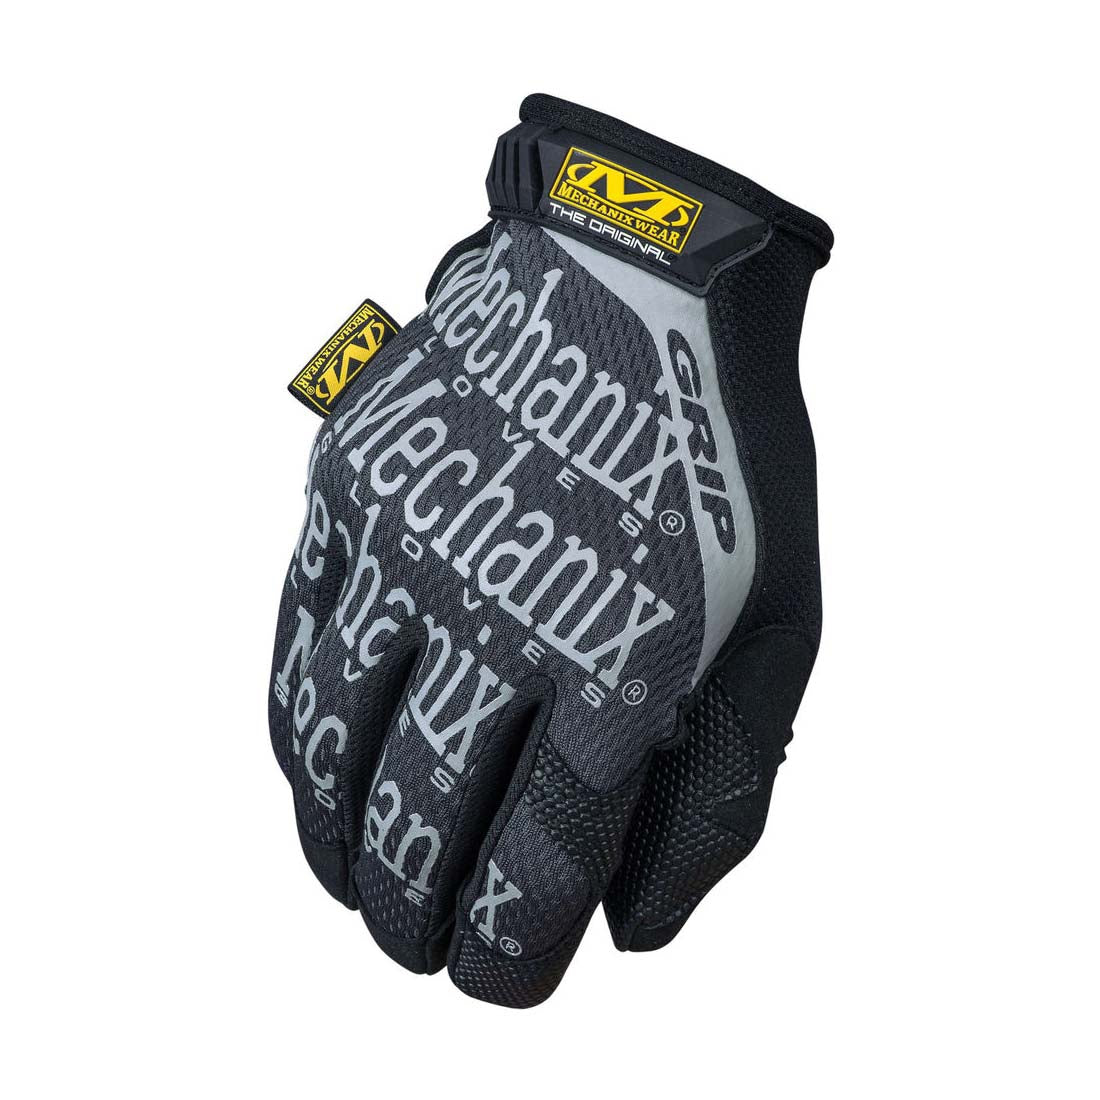 Mechanix Wear MGG-05-008 Black/ Grey The Original Grip Gloves - Small